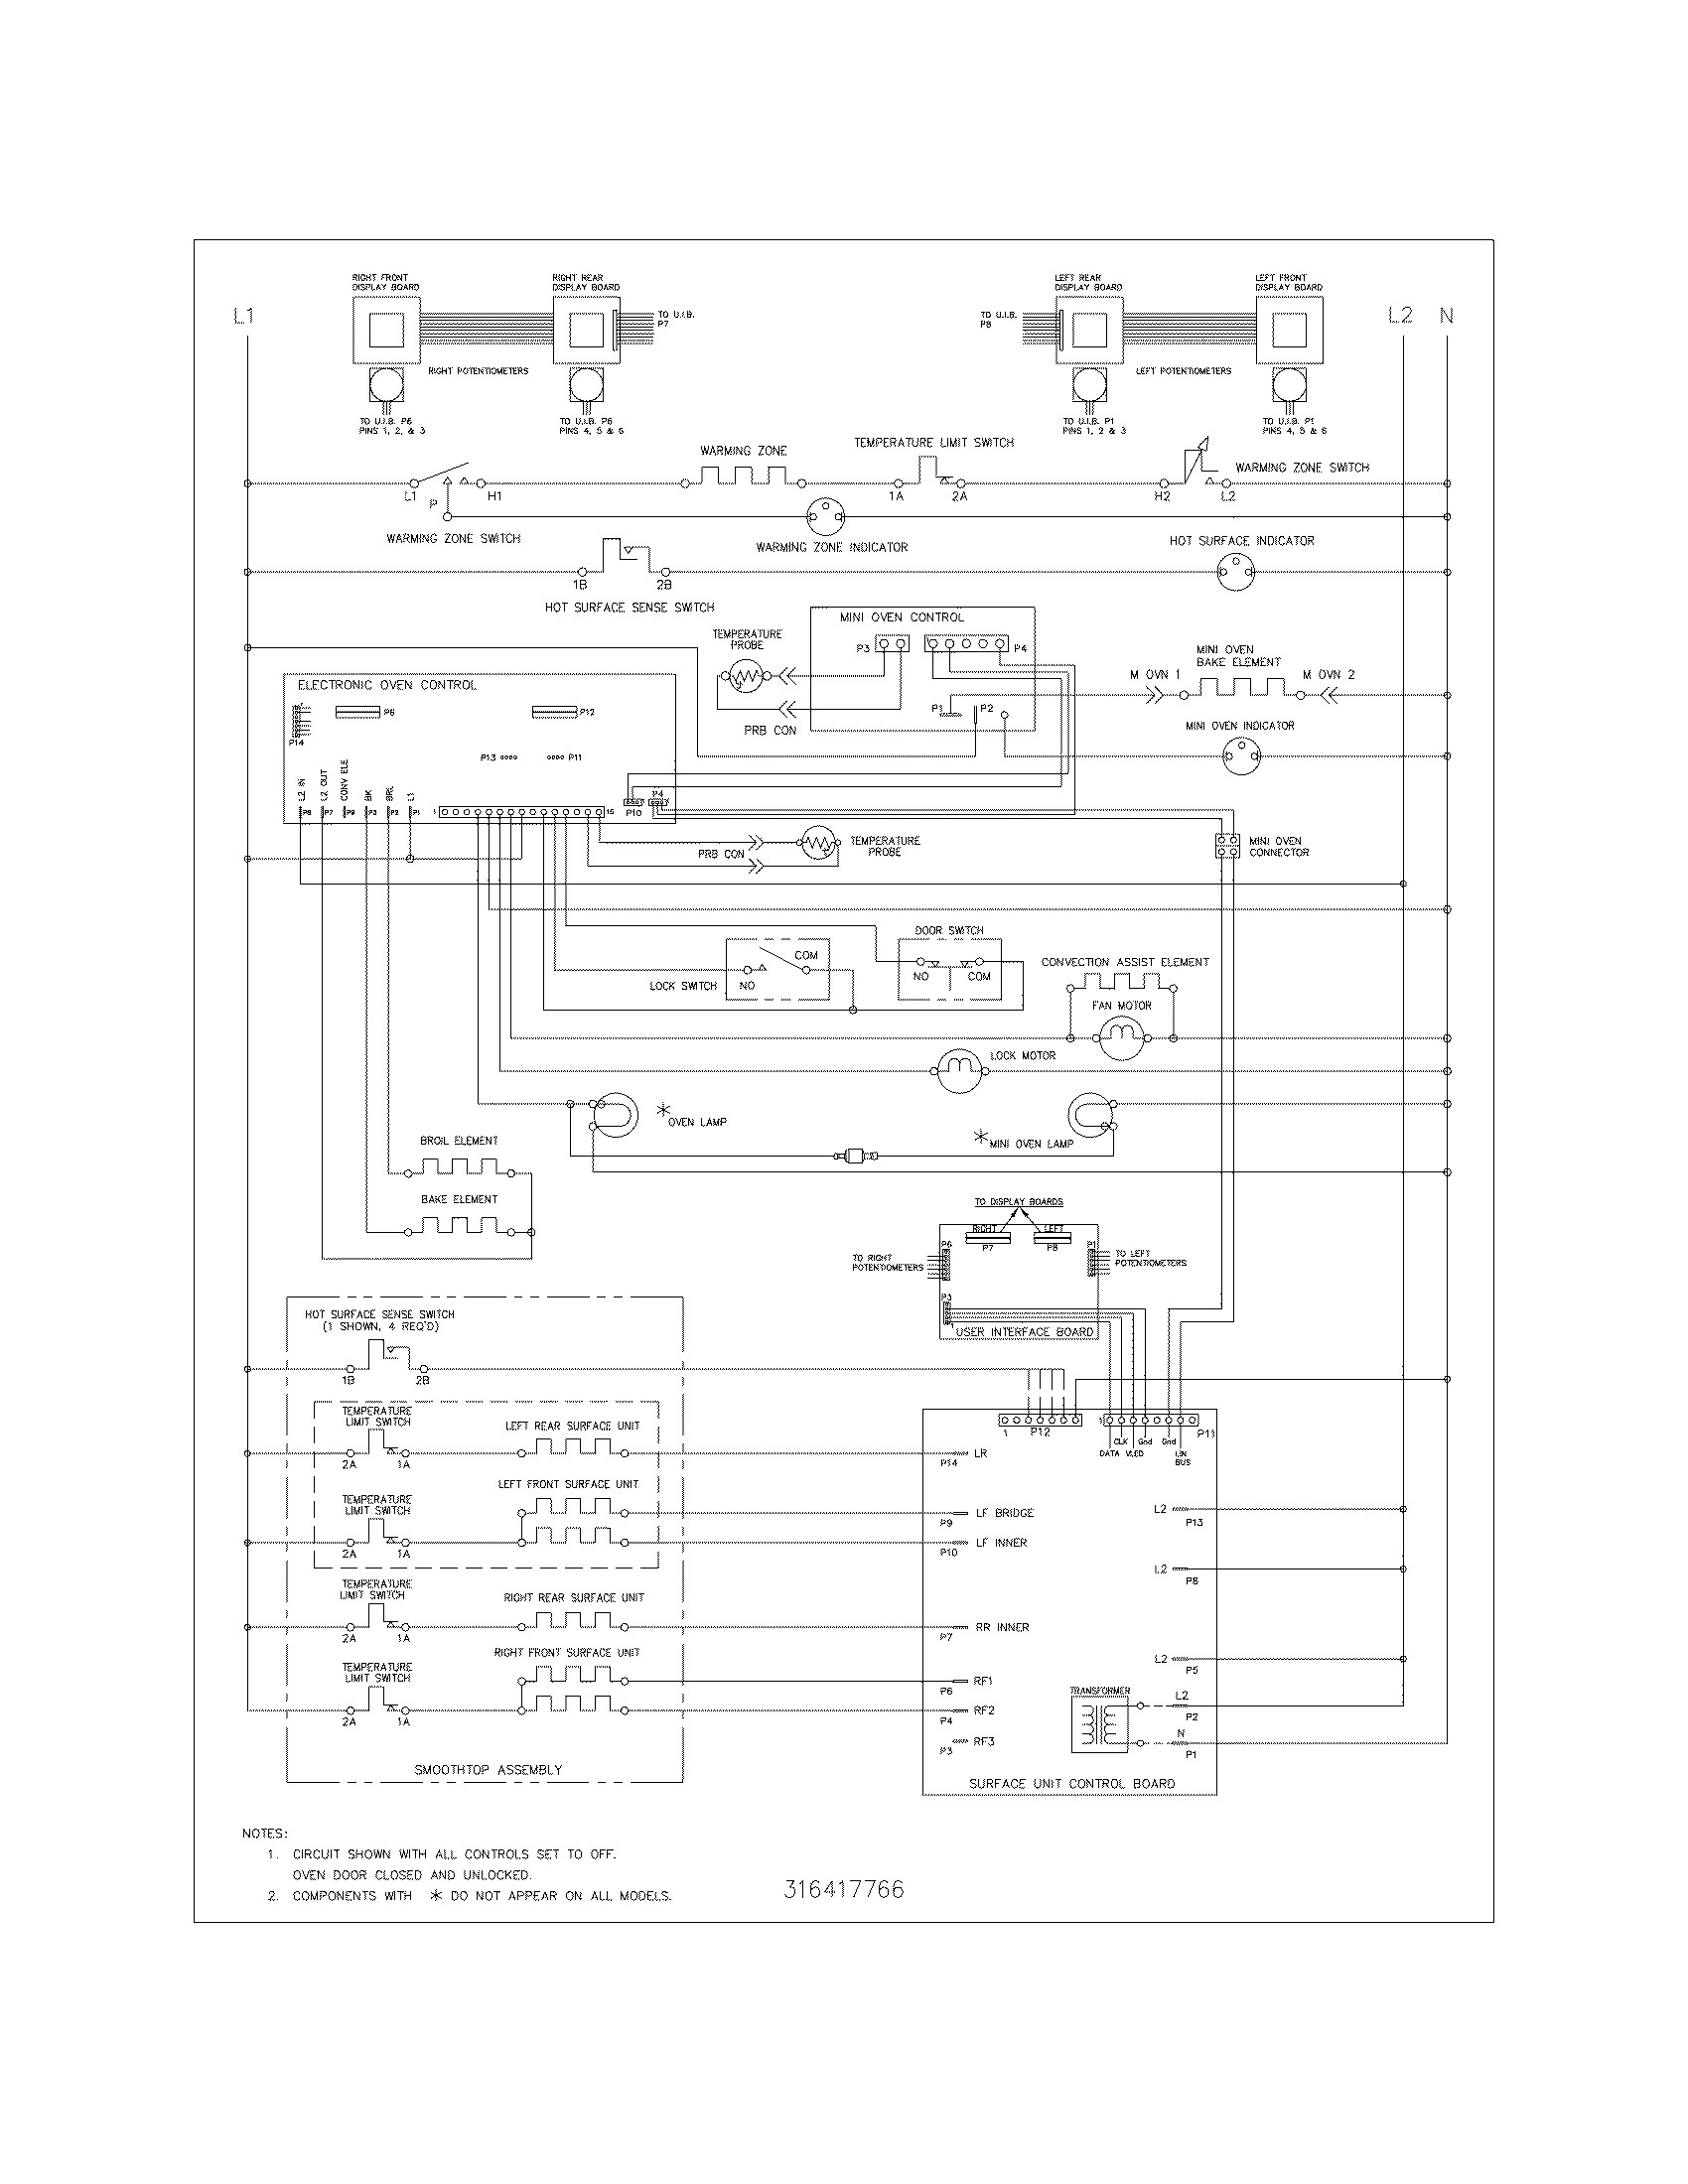 Frigidaire Stove Parts Diagram Looking for Frigidaire Model Plefmz99eca Electric Range Repair Of Frigidaire Stove Parts Diagram